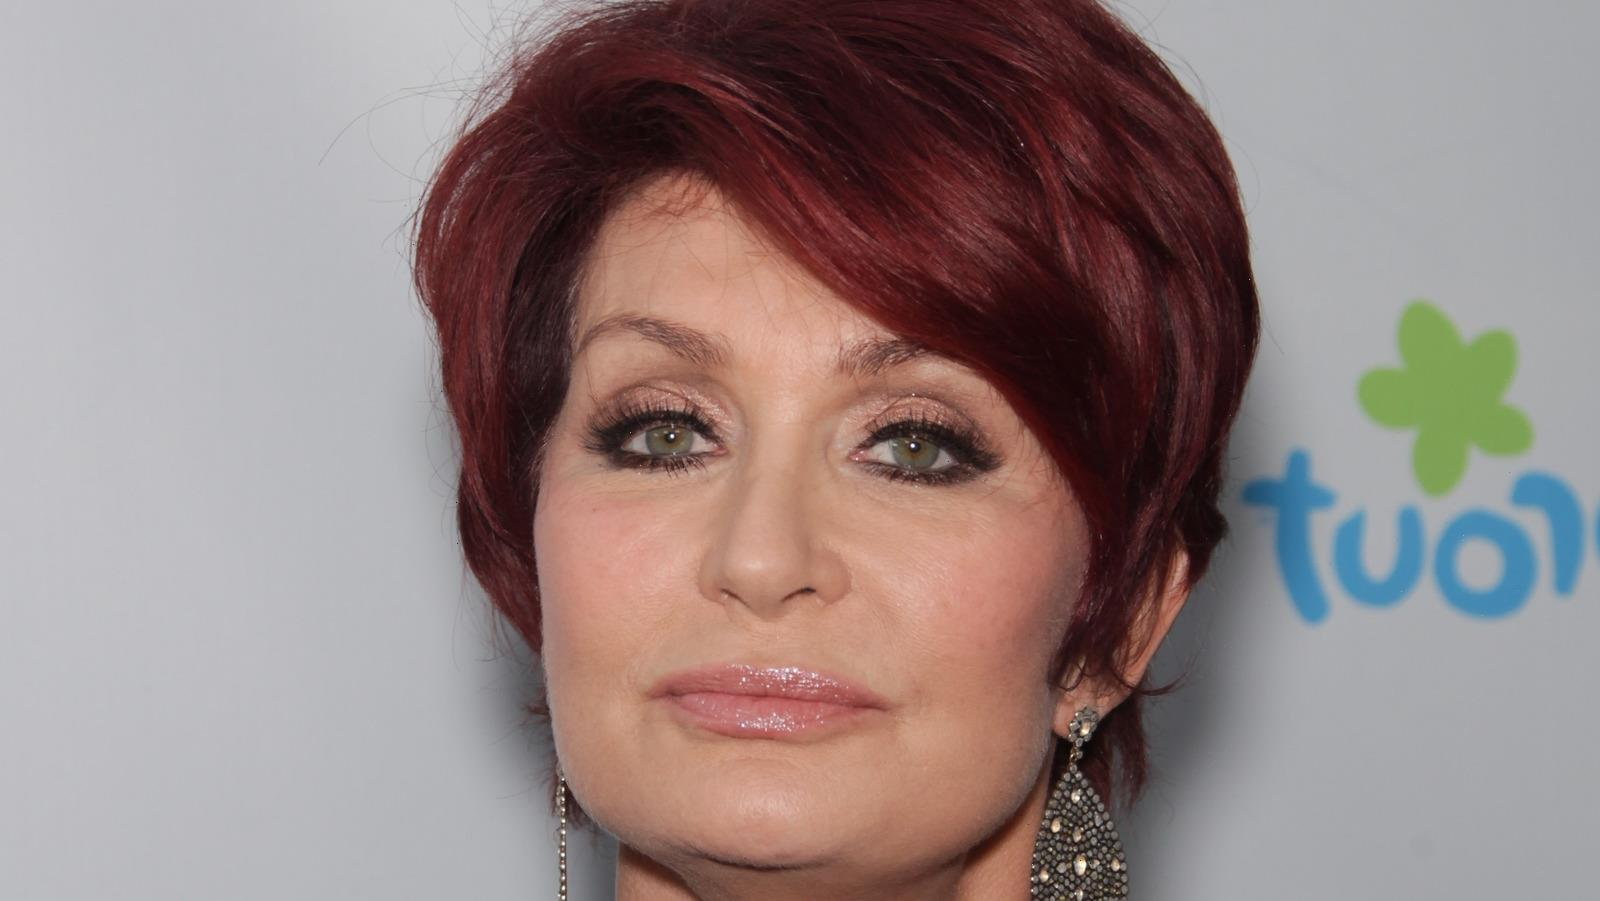 The Truth About Sharon Osbourne And Elaine Welteroth's Relationship